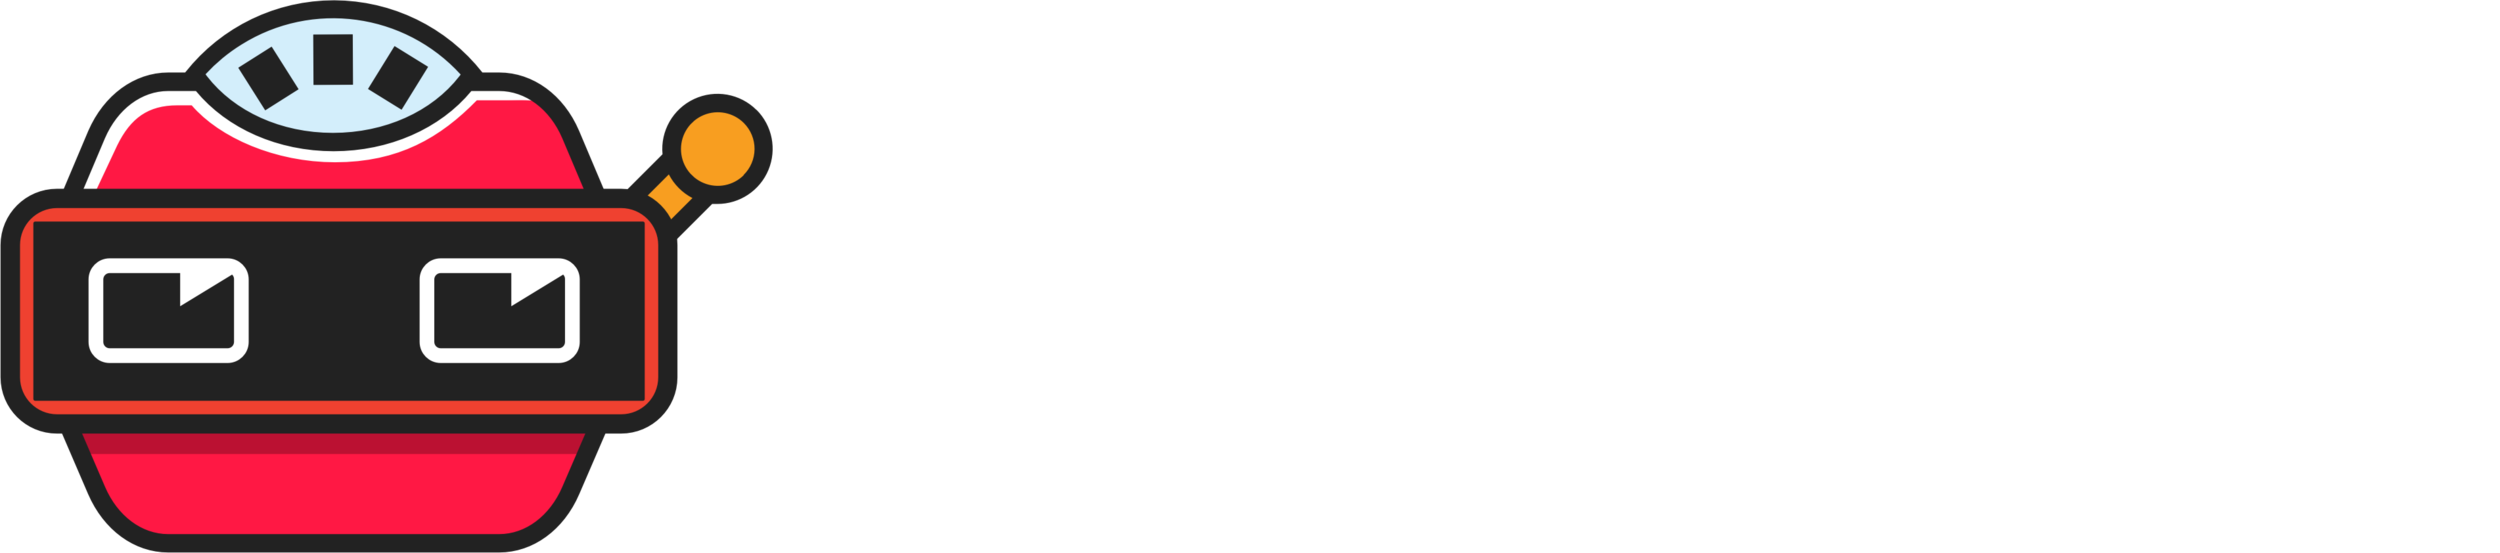 EndUser helps companies make better decisions by using methods like Design Sprint and Growth Hacking; we promote a human-centred approach to product/service experiences.   https://enduser.co.nz